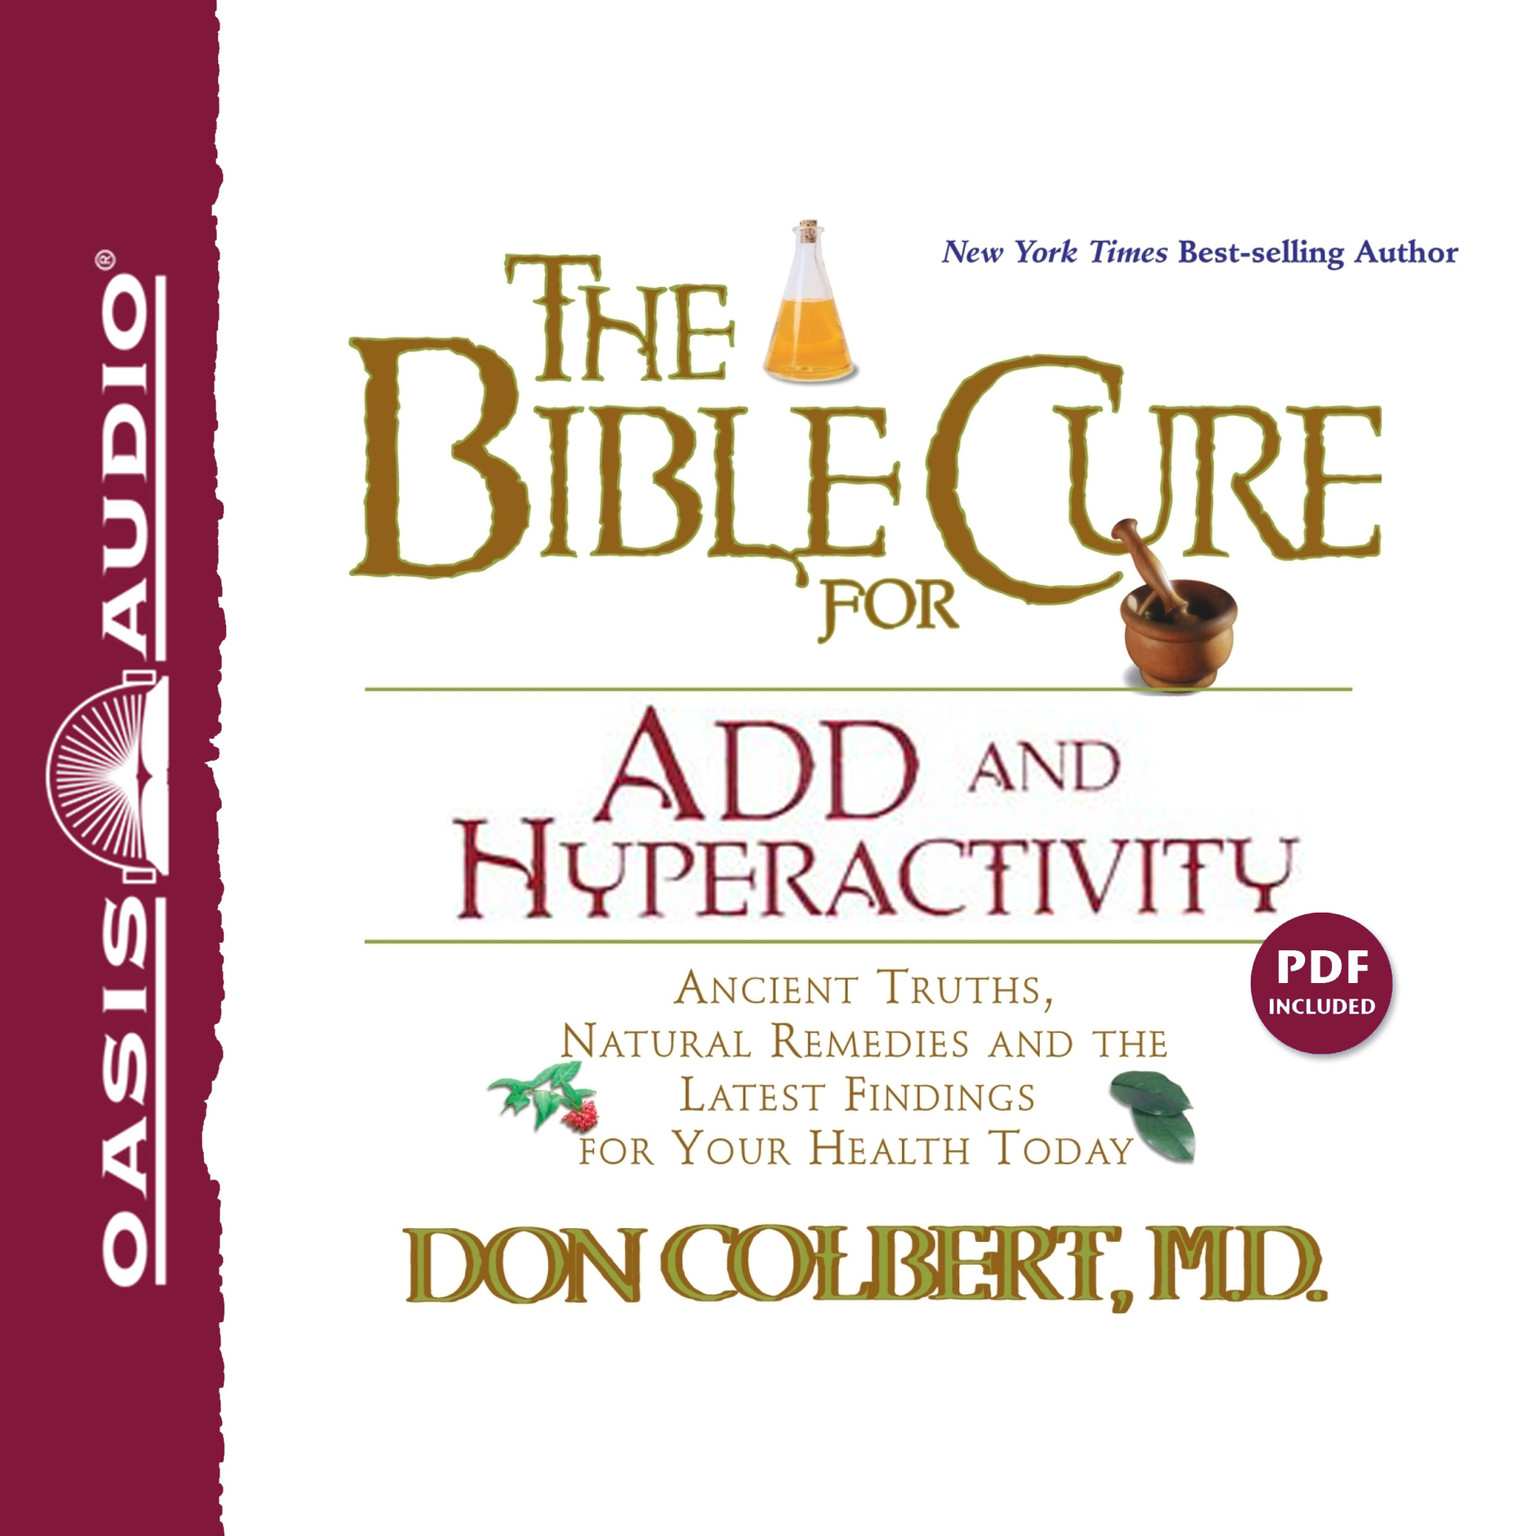 32914a120a7 The Bible Cure for ADD and Hyperactivity: Ancient Truths, Natural Remedies  and the Latest